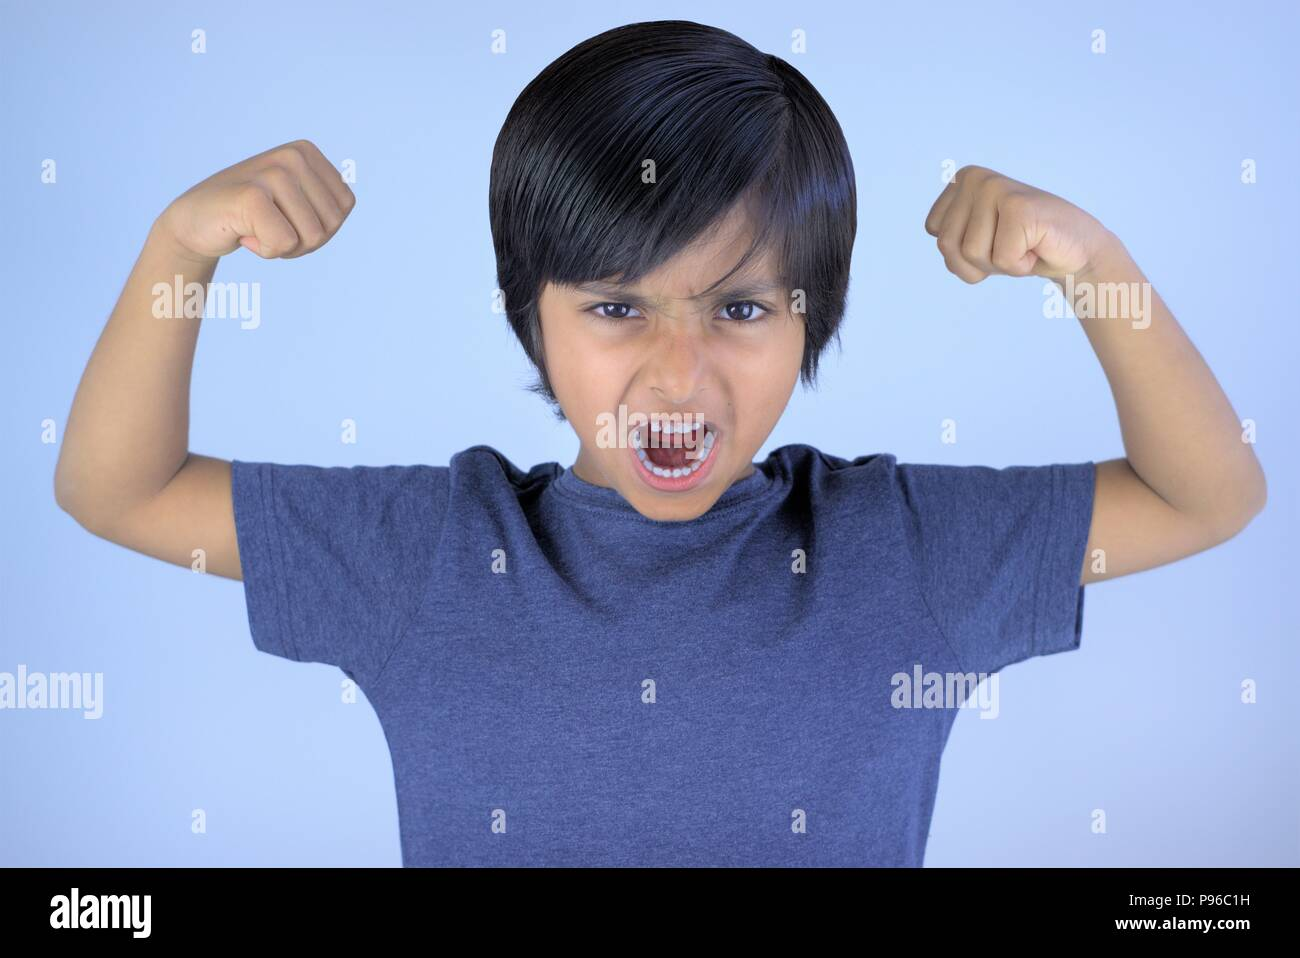 Angry kid screaming or yelling with raised arms and closed fists - Stock Image